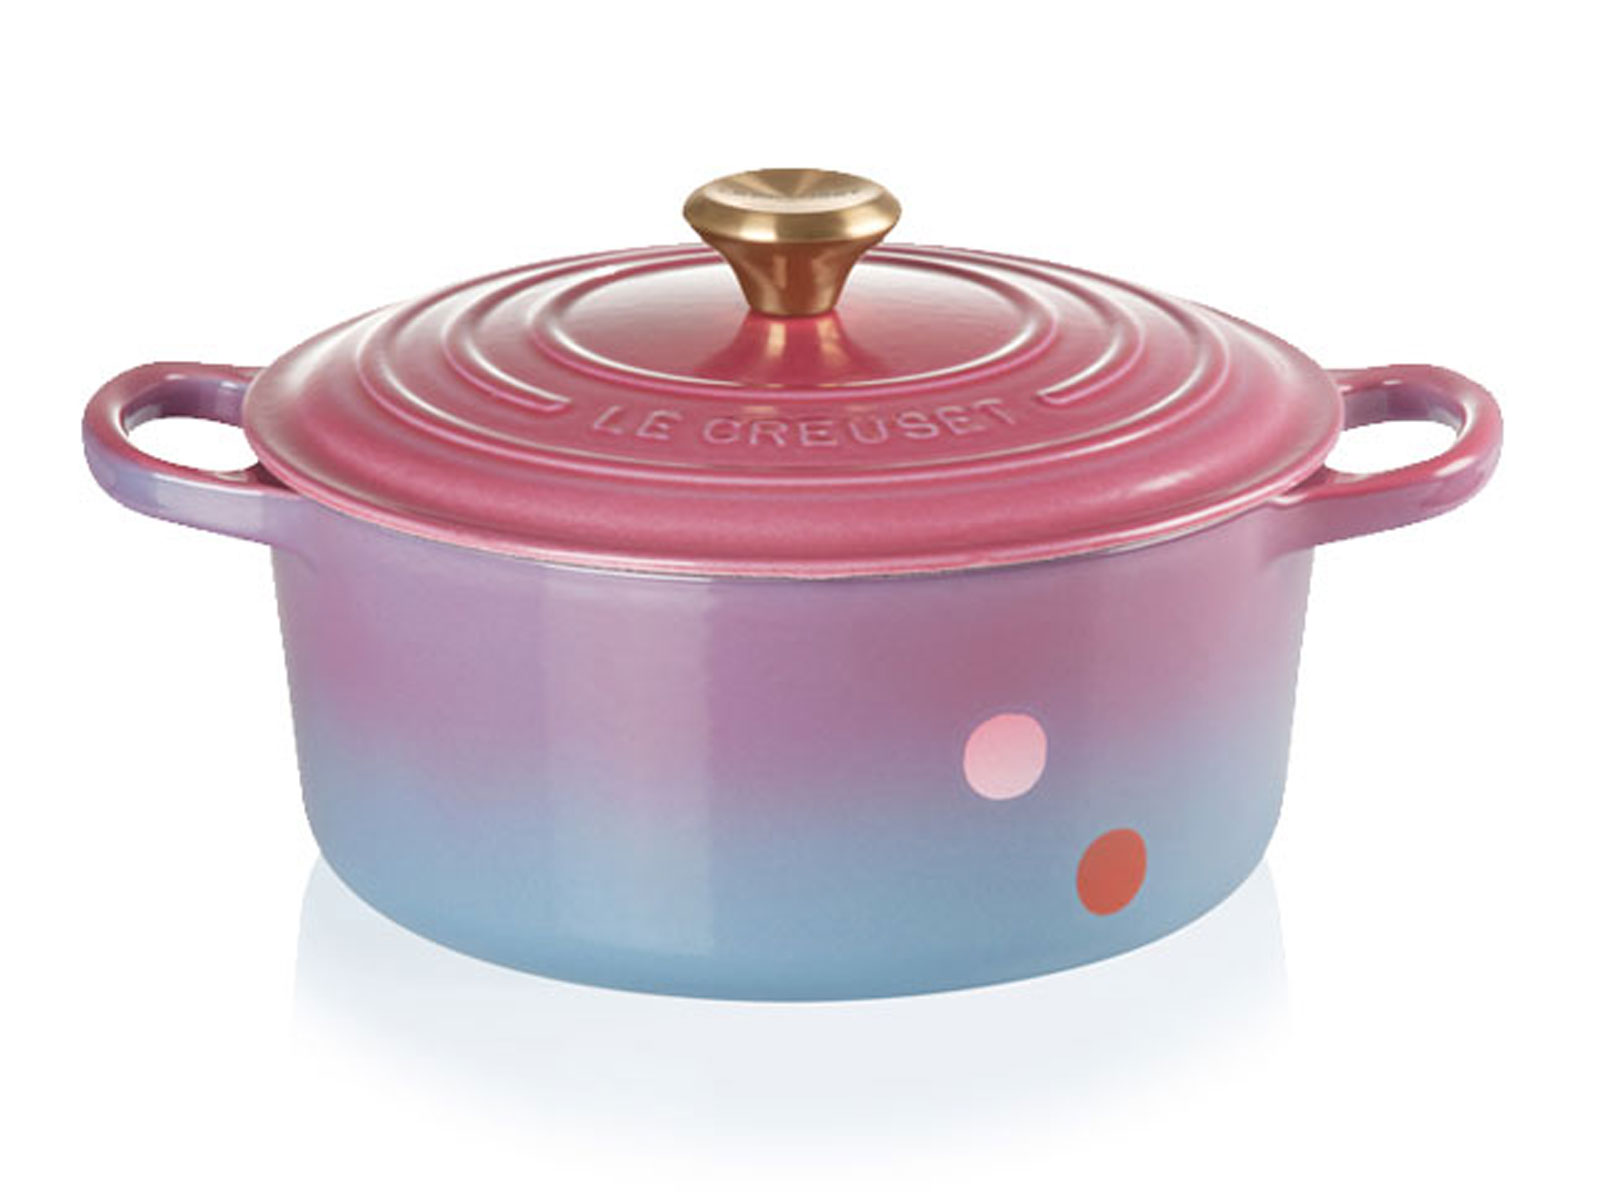 Le Creuset Star Wars Tatooine Dutch Oven